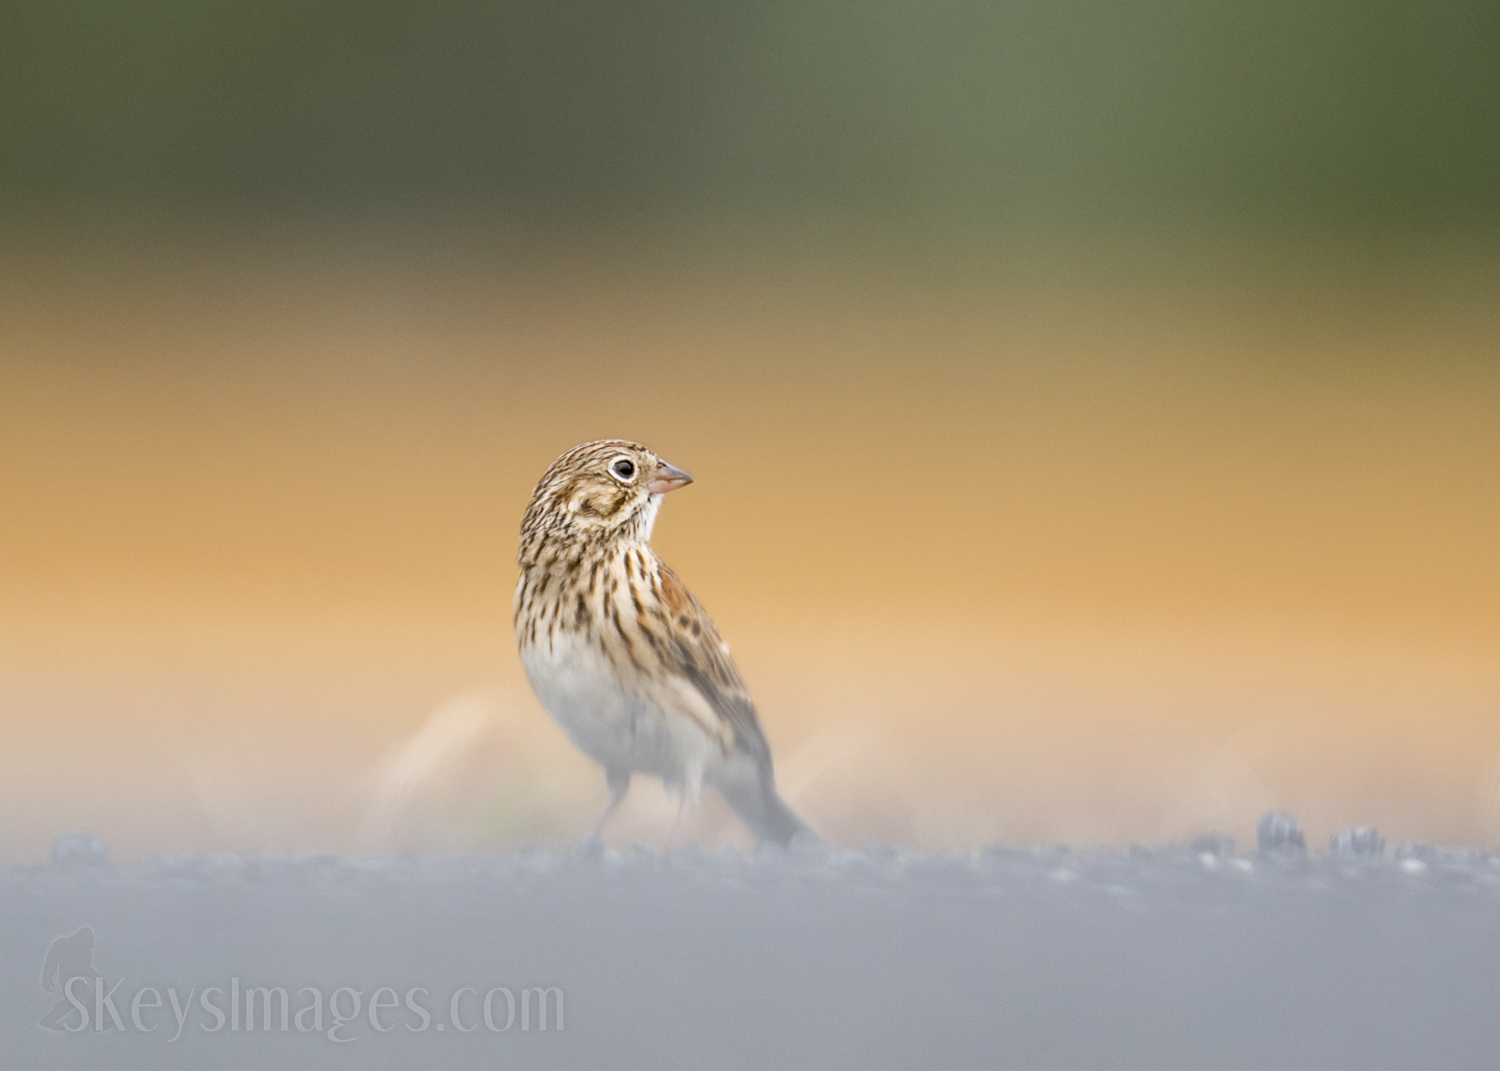 Foraging birds are not always in the open like this. Getting on the ground here gives a very different and intimate feel to these Vesper Sparrows. This bird is on the other side of a gravel road. Shooting down at an angle would bring in that very bland element and make it look like a bird on the road.  Changing to really low (actually an inch or two below the bird as he in on the slightly elevated road) allowed 2 layers of backgrounds to come in to play. There are golds from a burnt field that lead into a tree line on the horizon. Getting this low will get some super out-of-focus elements that can bleed into the subject, so you will have to determine if this bothers you or not. For me seeing the three layers evenly broken up created a more interesting image and the blurred bottom of the bird lead into the in-focus head which also worked for me.